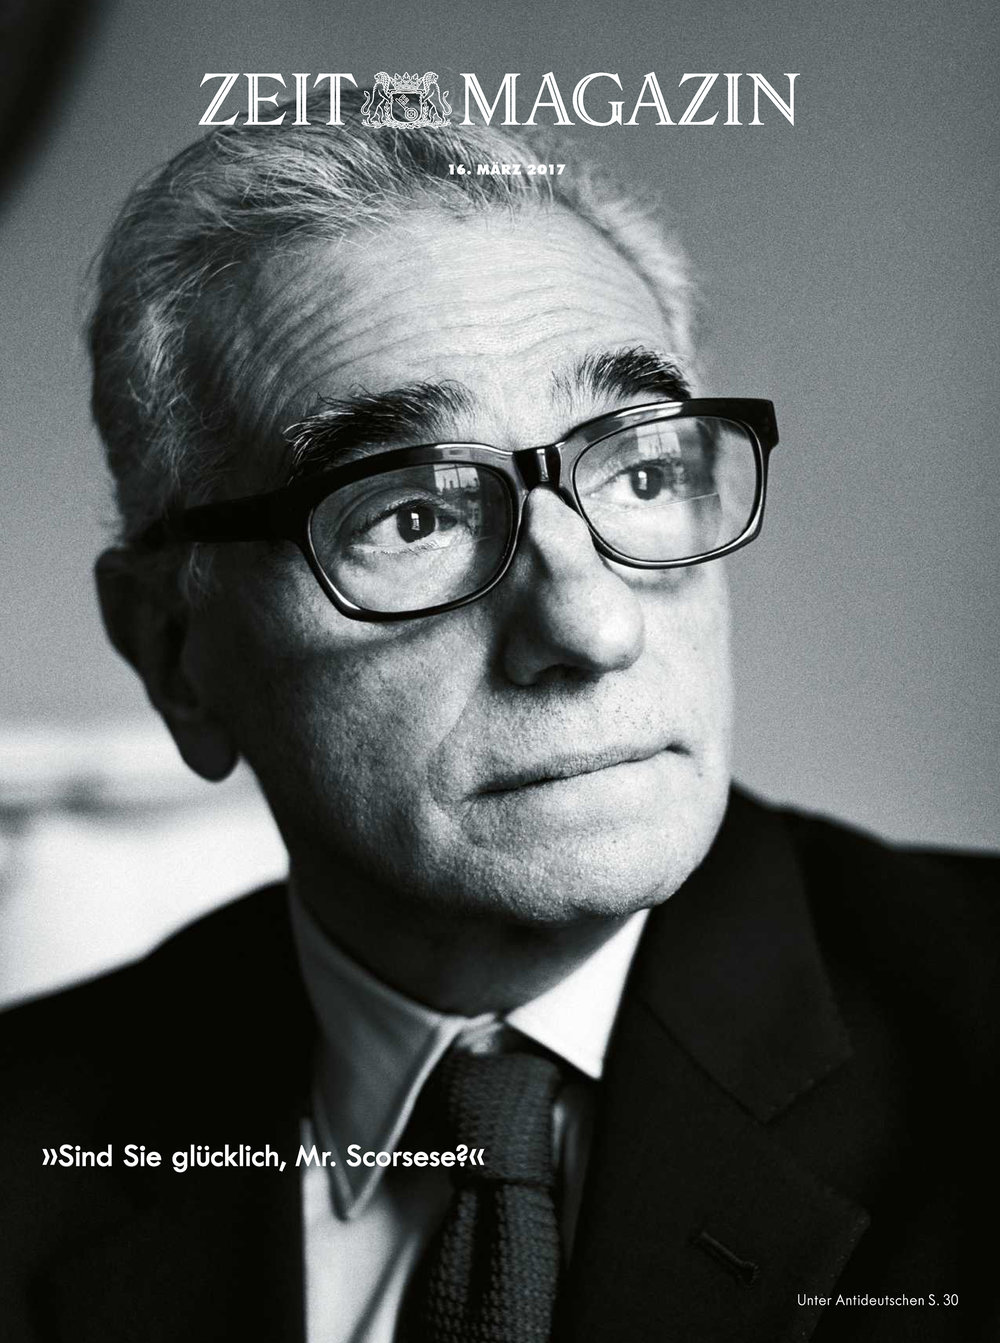 Martin Scorsese, ZEIT Magazin cover, March 2017